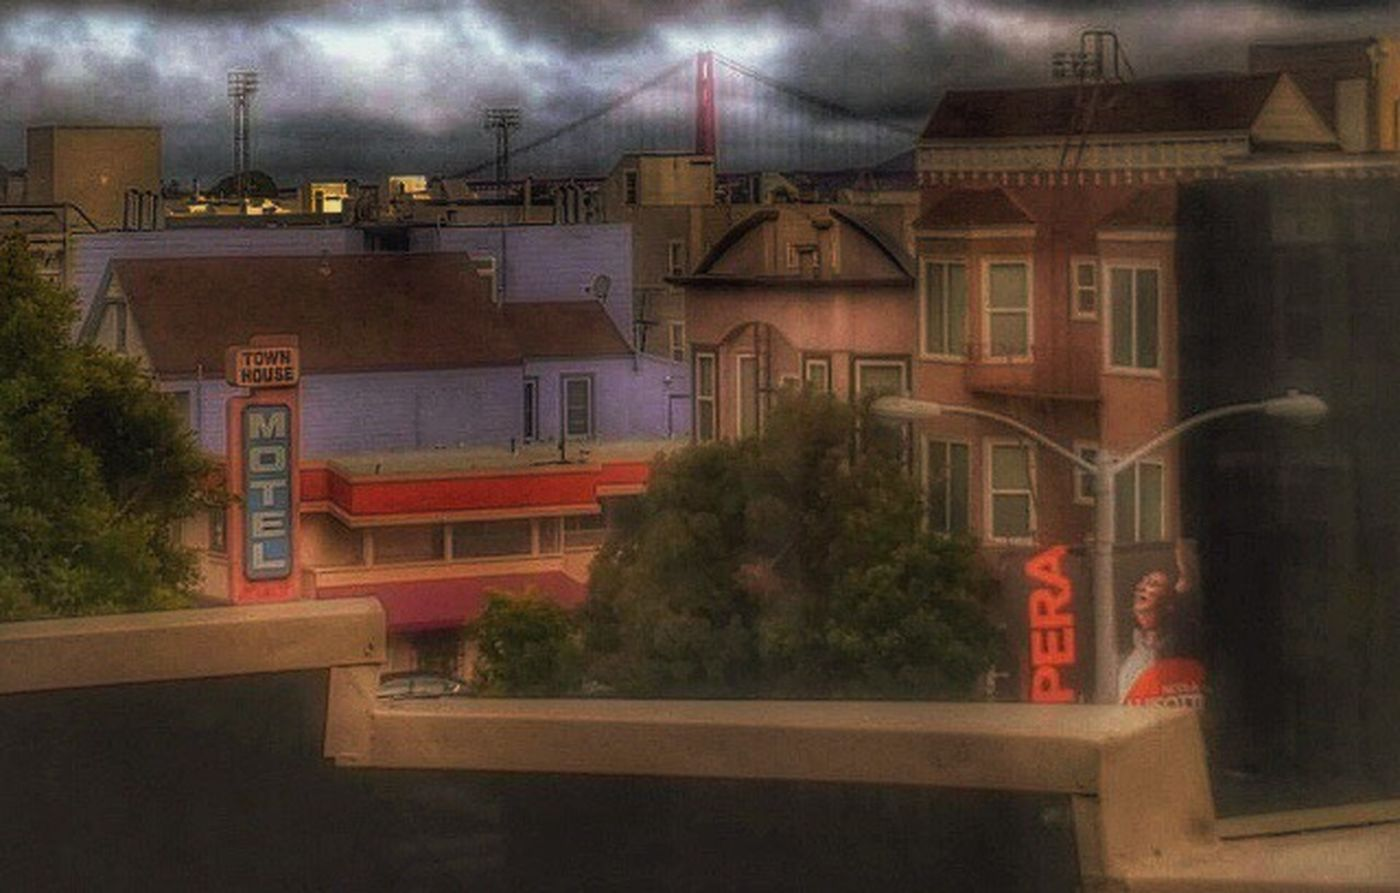 Mix Yourself A Good Time My View San Francisco, California Golden Gate Bridge Building Exterior Hotell City Life